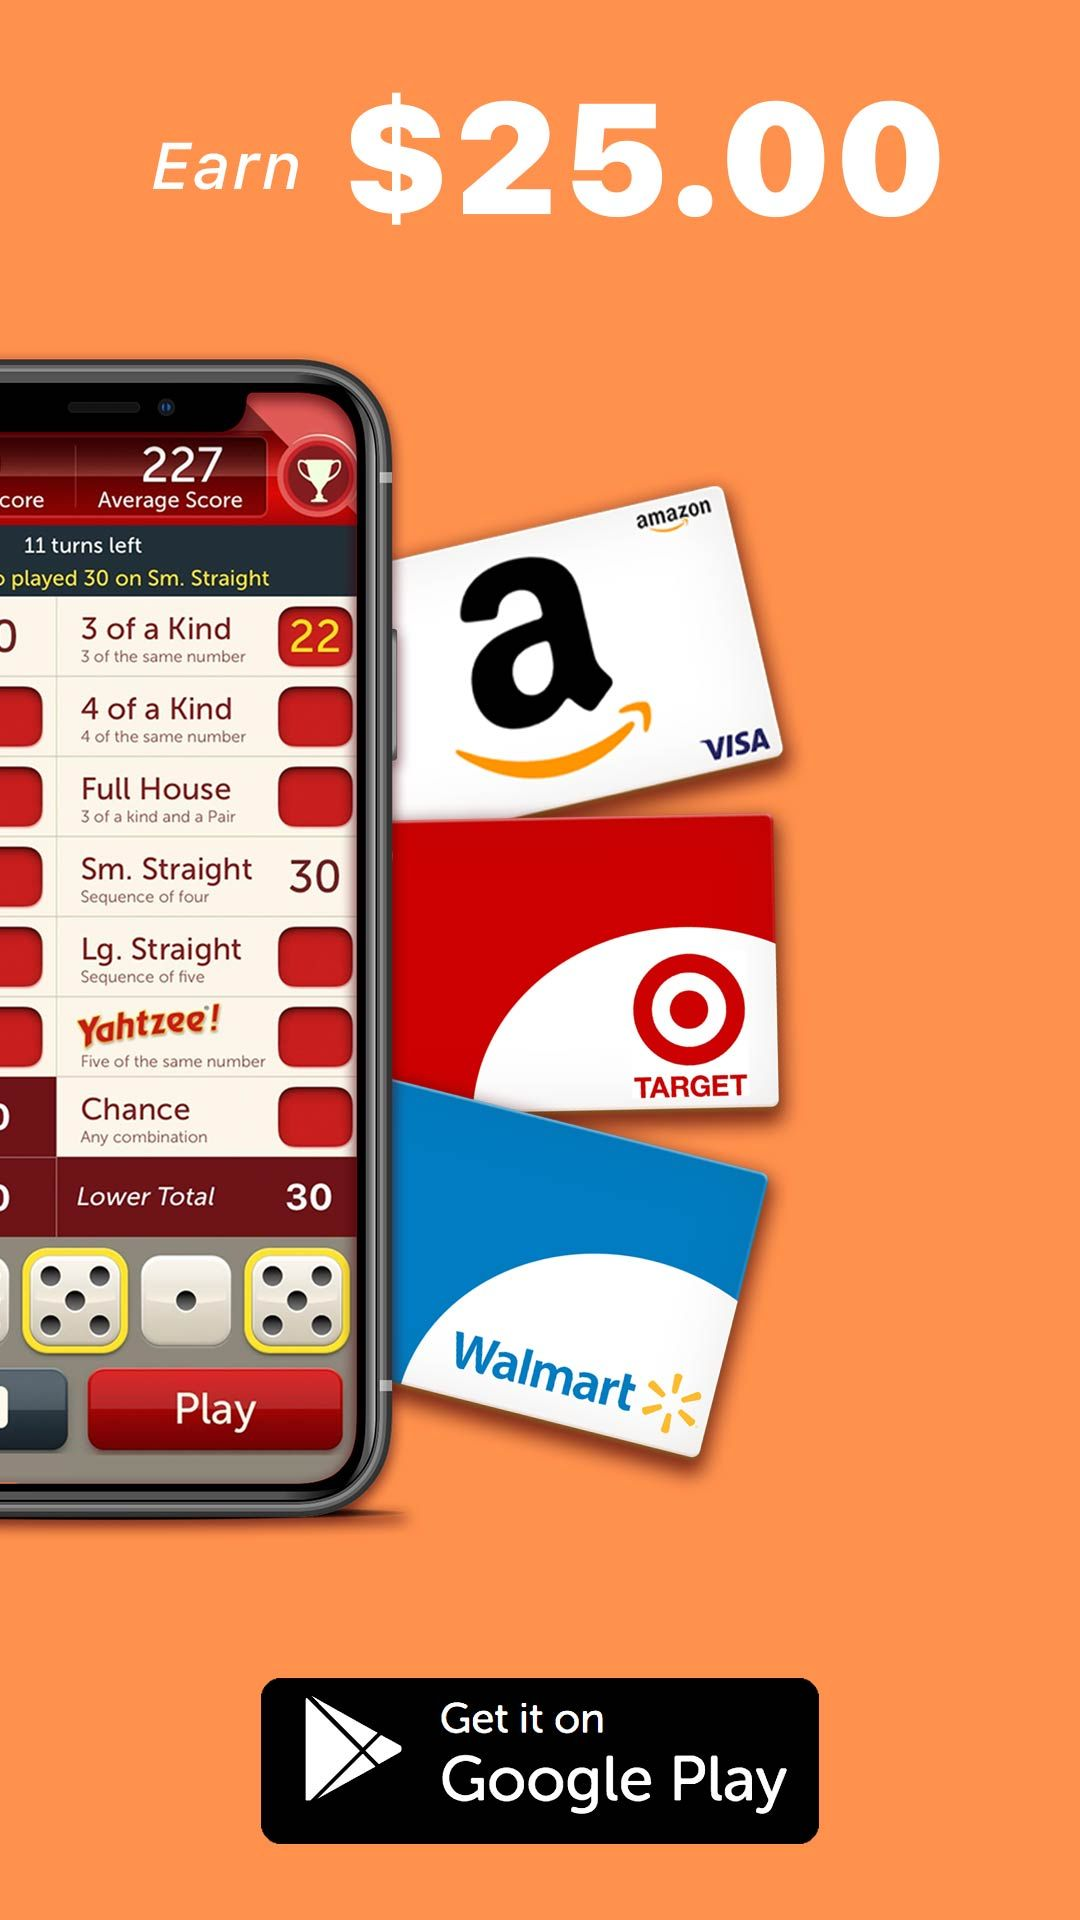 Earn 100 free gift cards while playing games on your